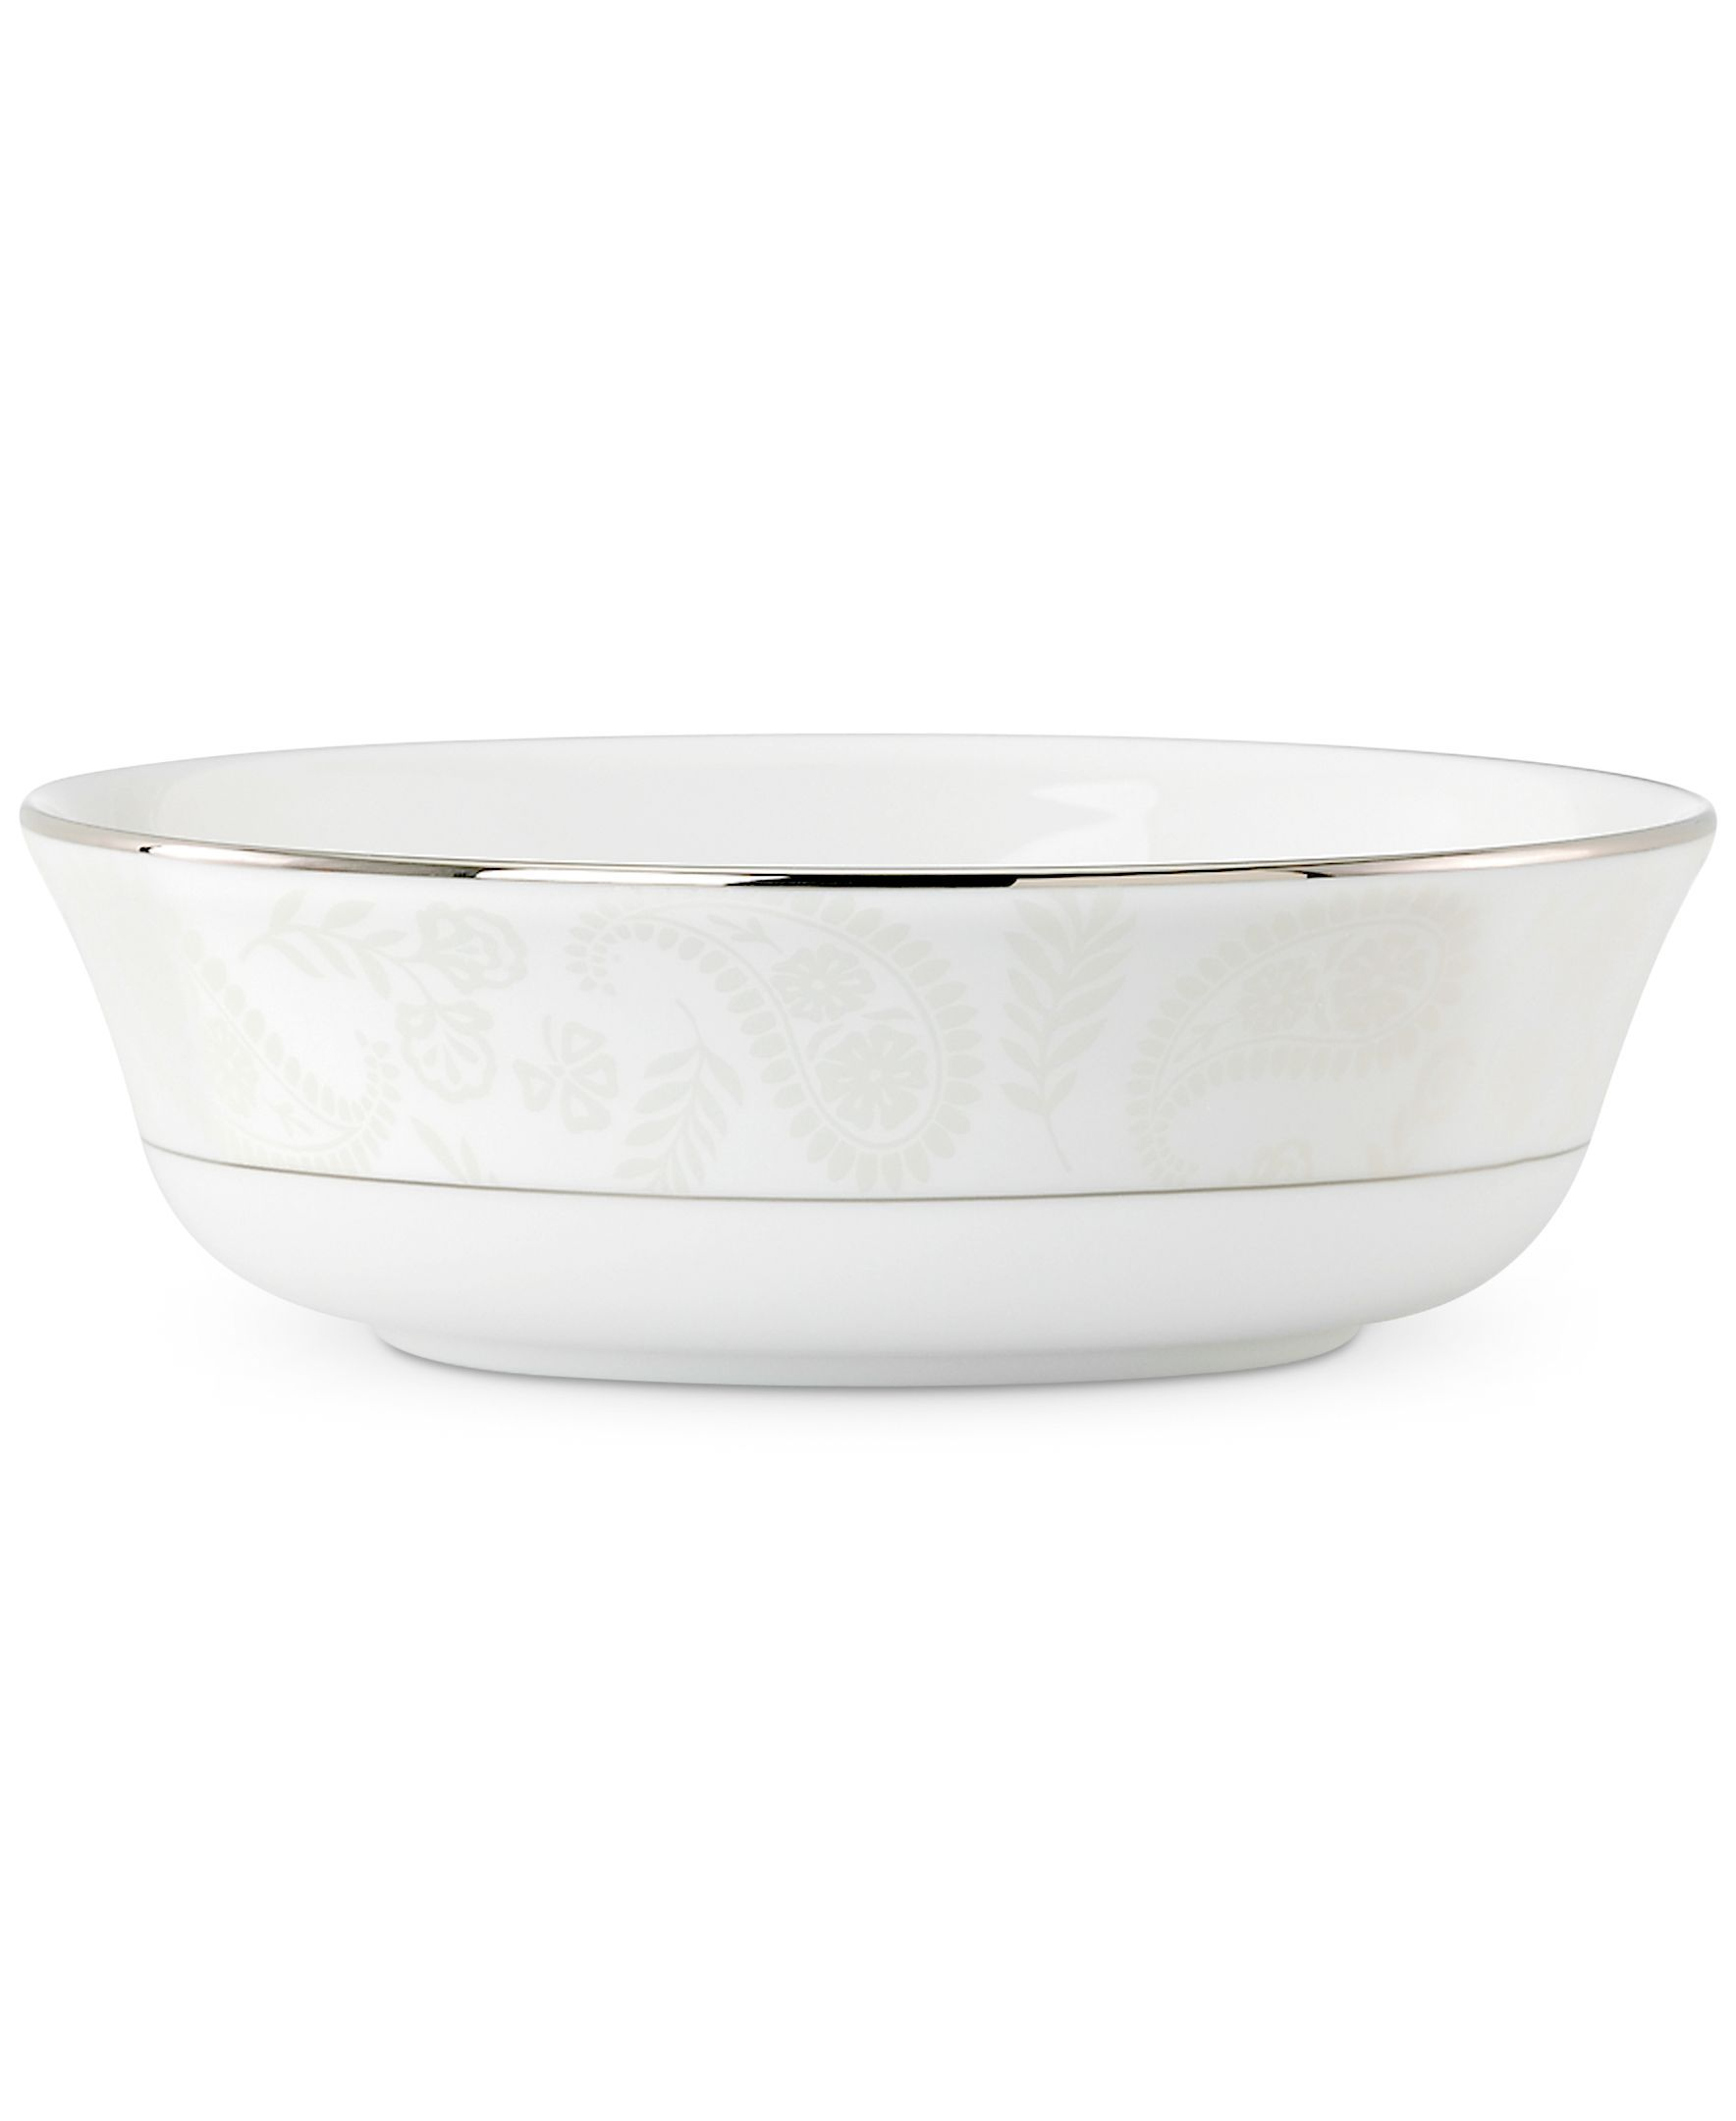 kate spade new york Bonnabel Place All-Purpose Bowl